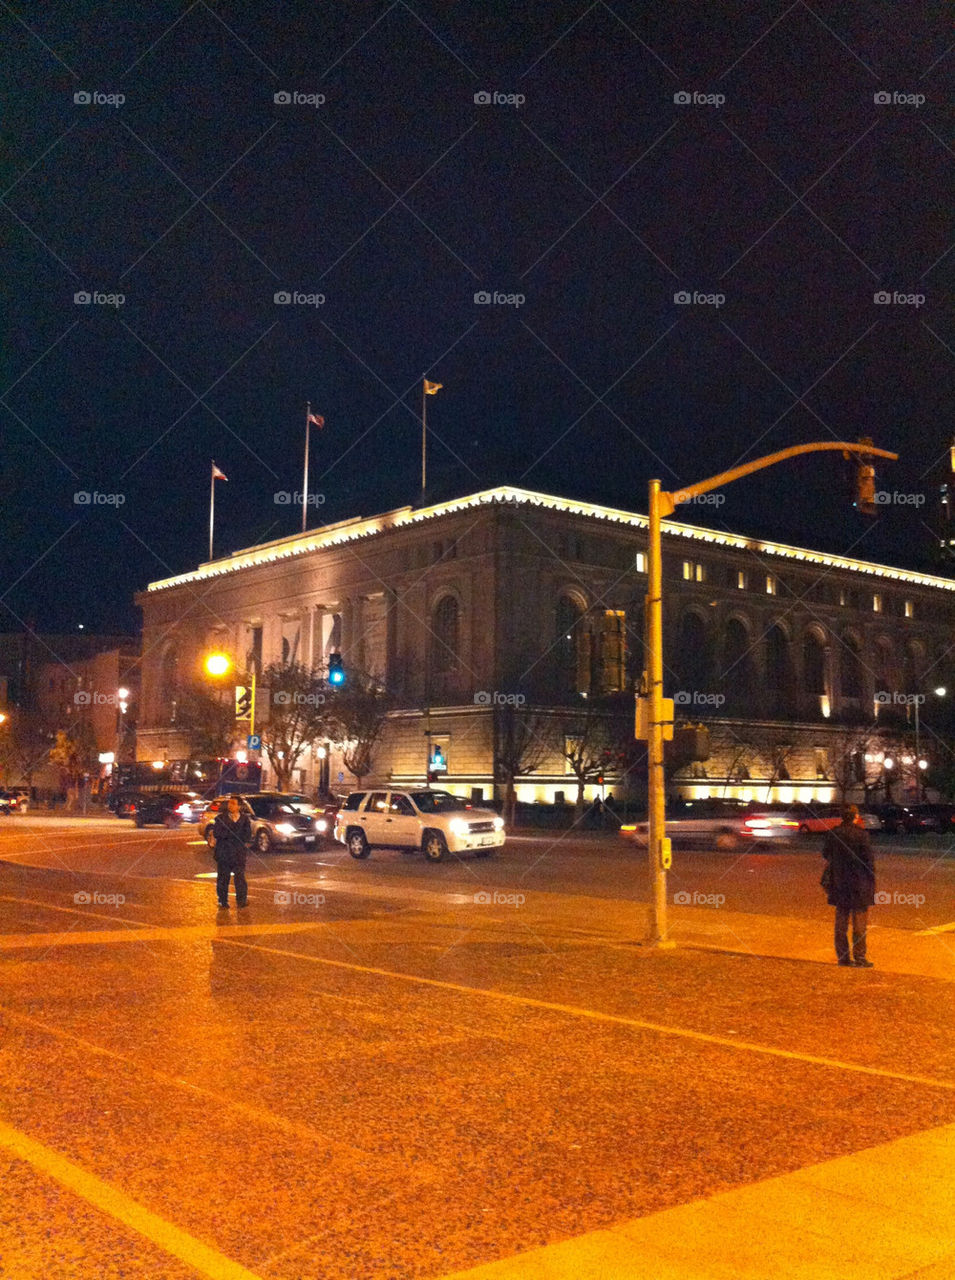 A picture at the Civic Center in San Francisco.